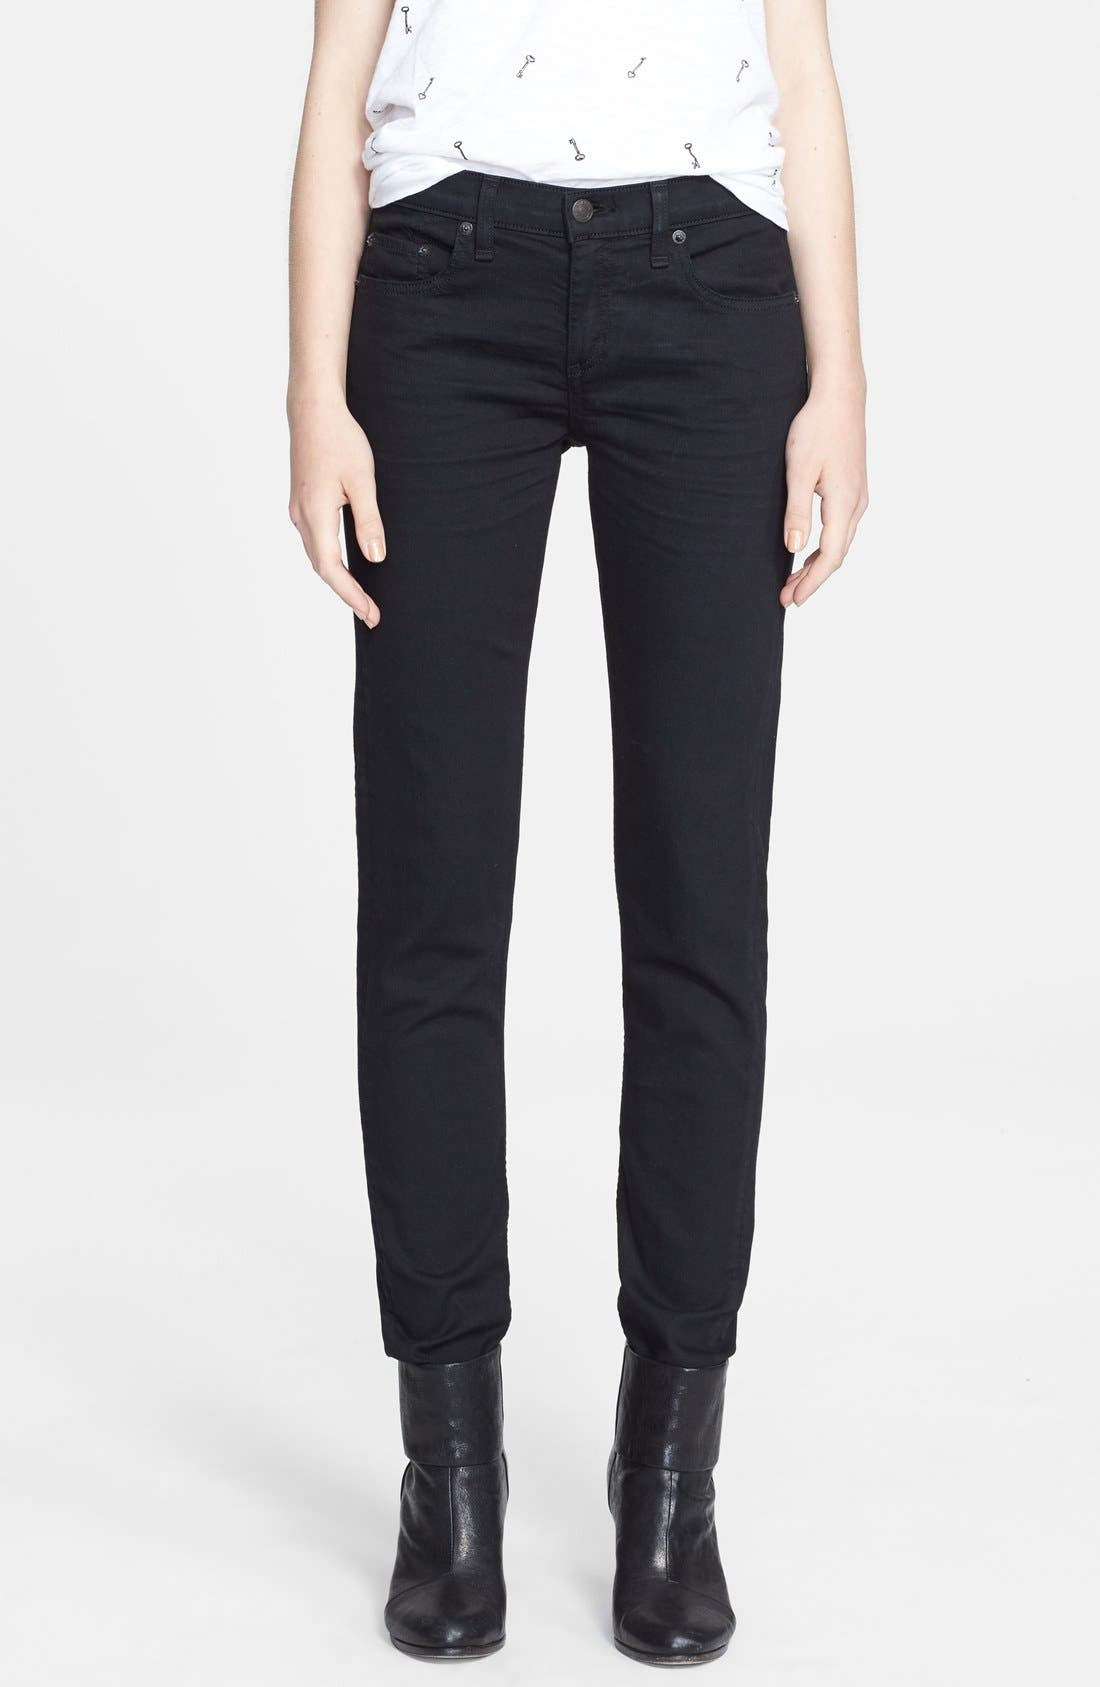 'The Dre' Skinny Jeans,                         Main,                         color, Aged Black